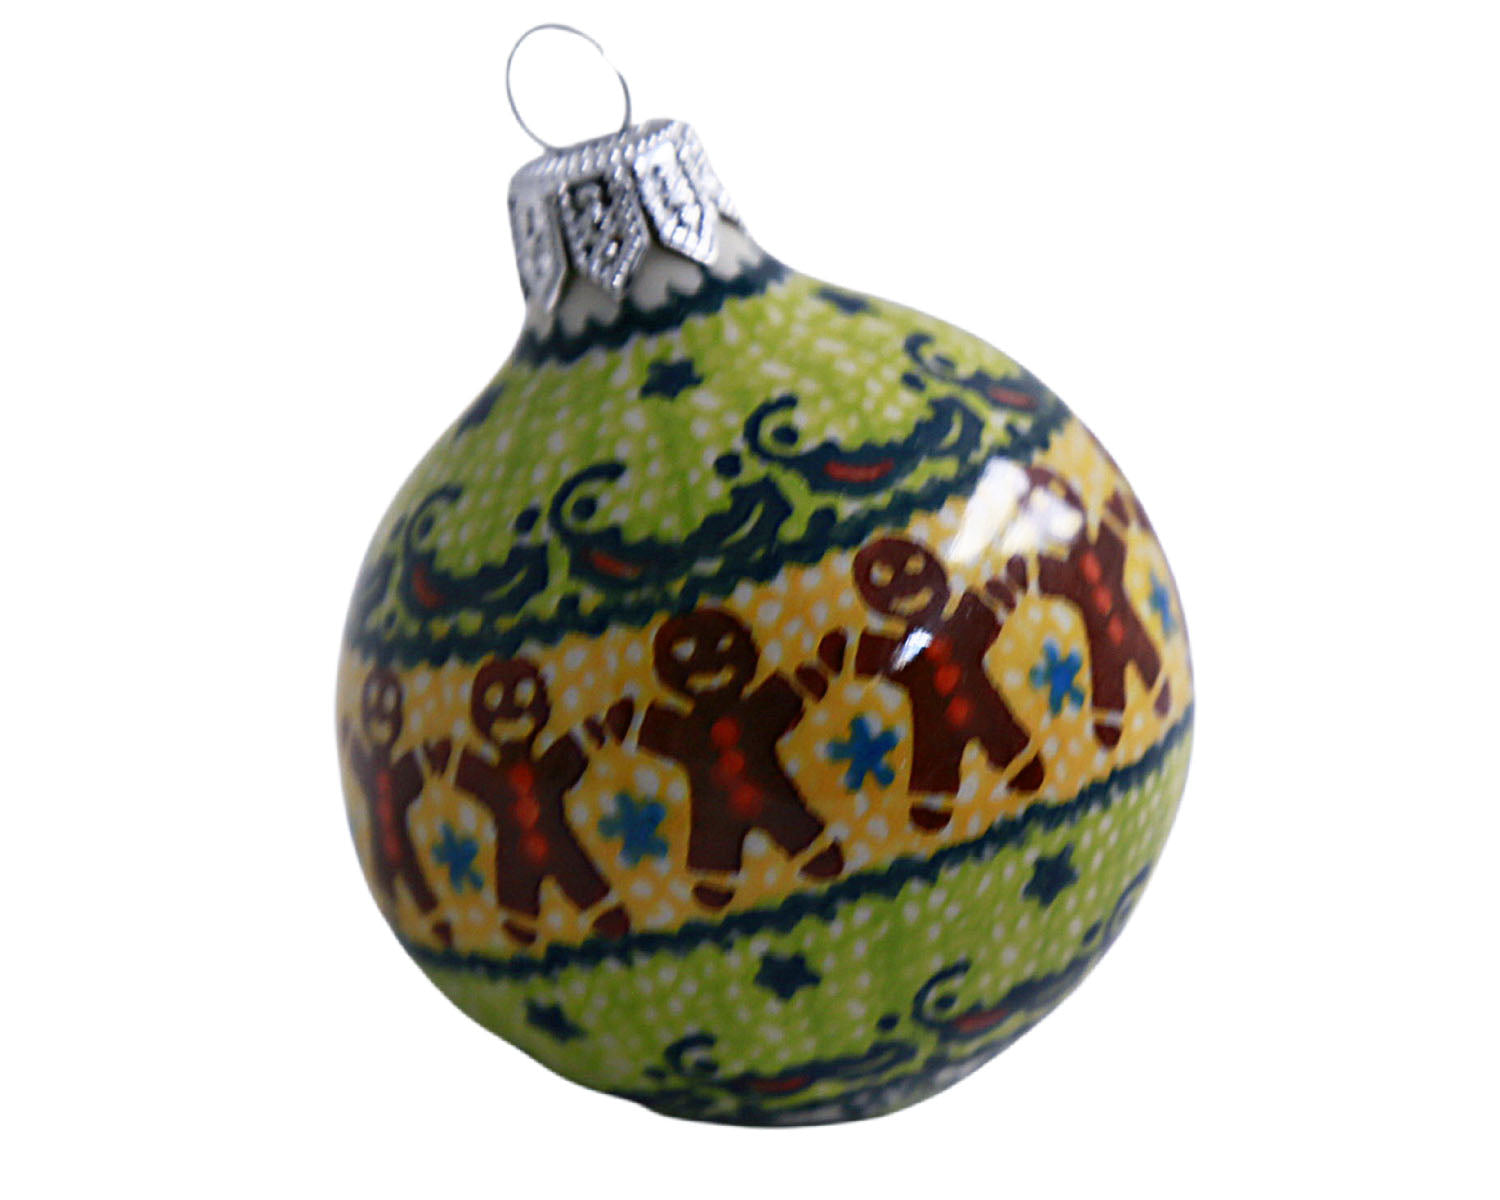 Unikat Ornament